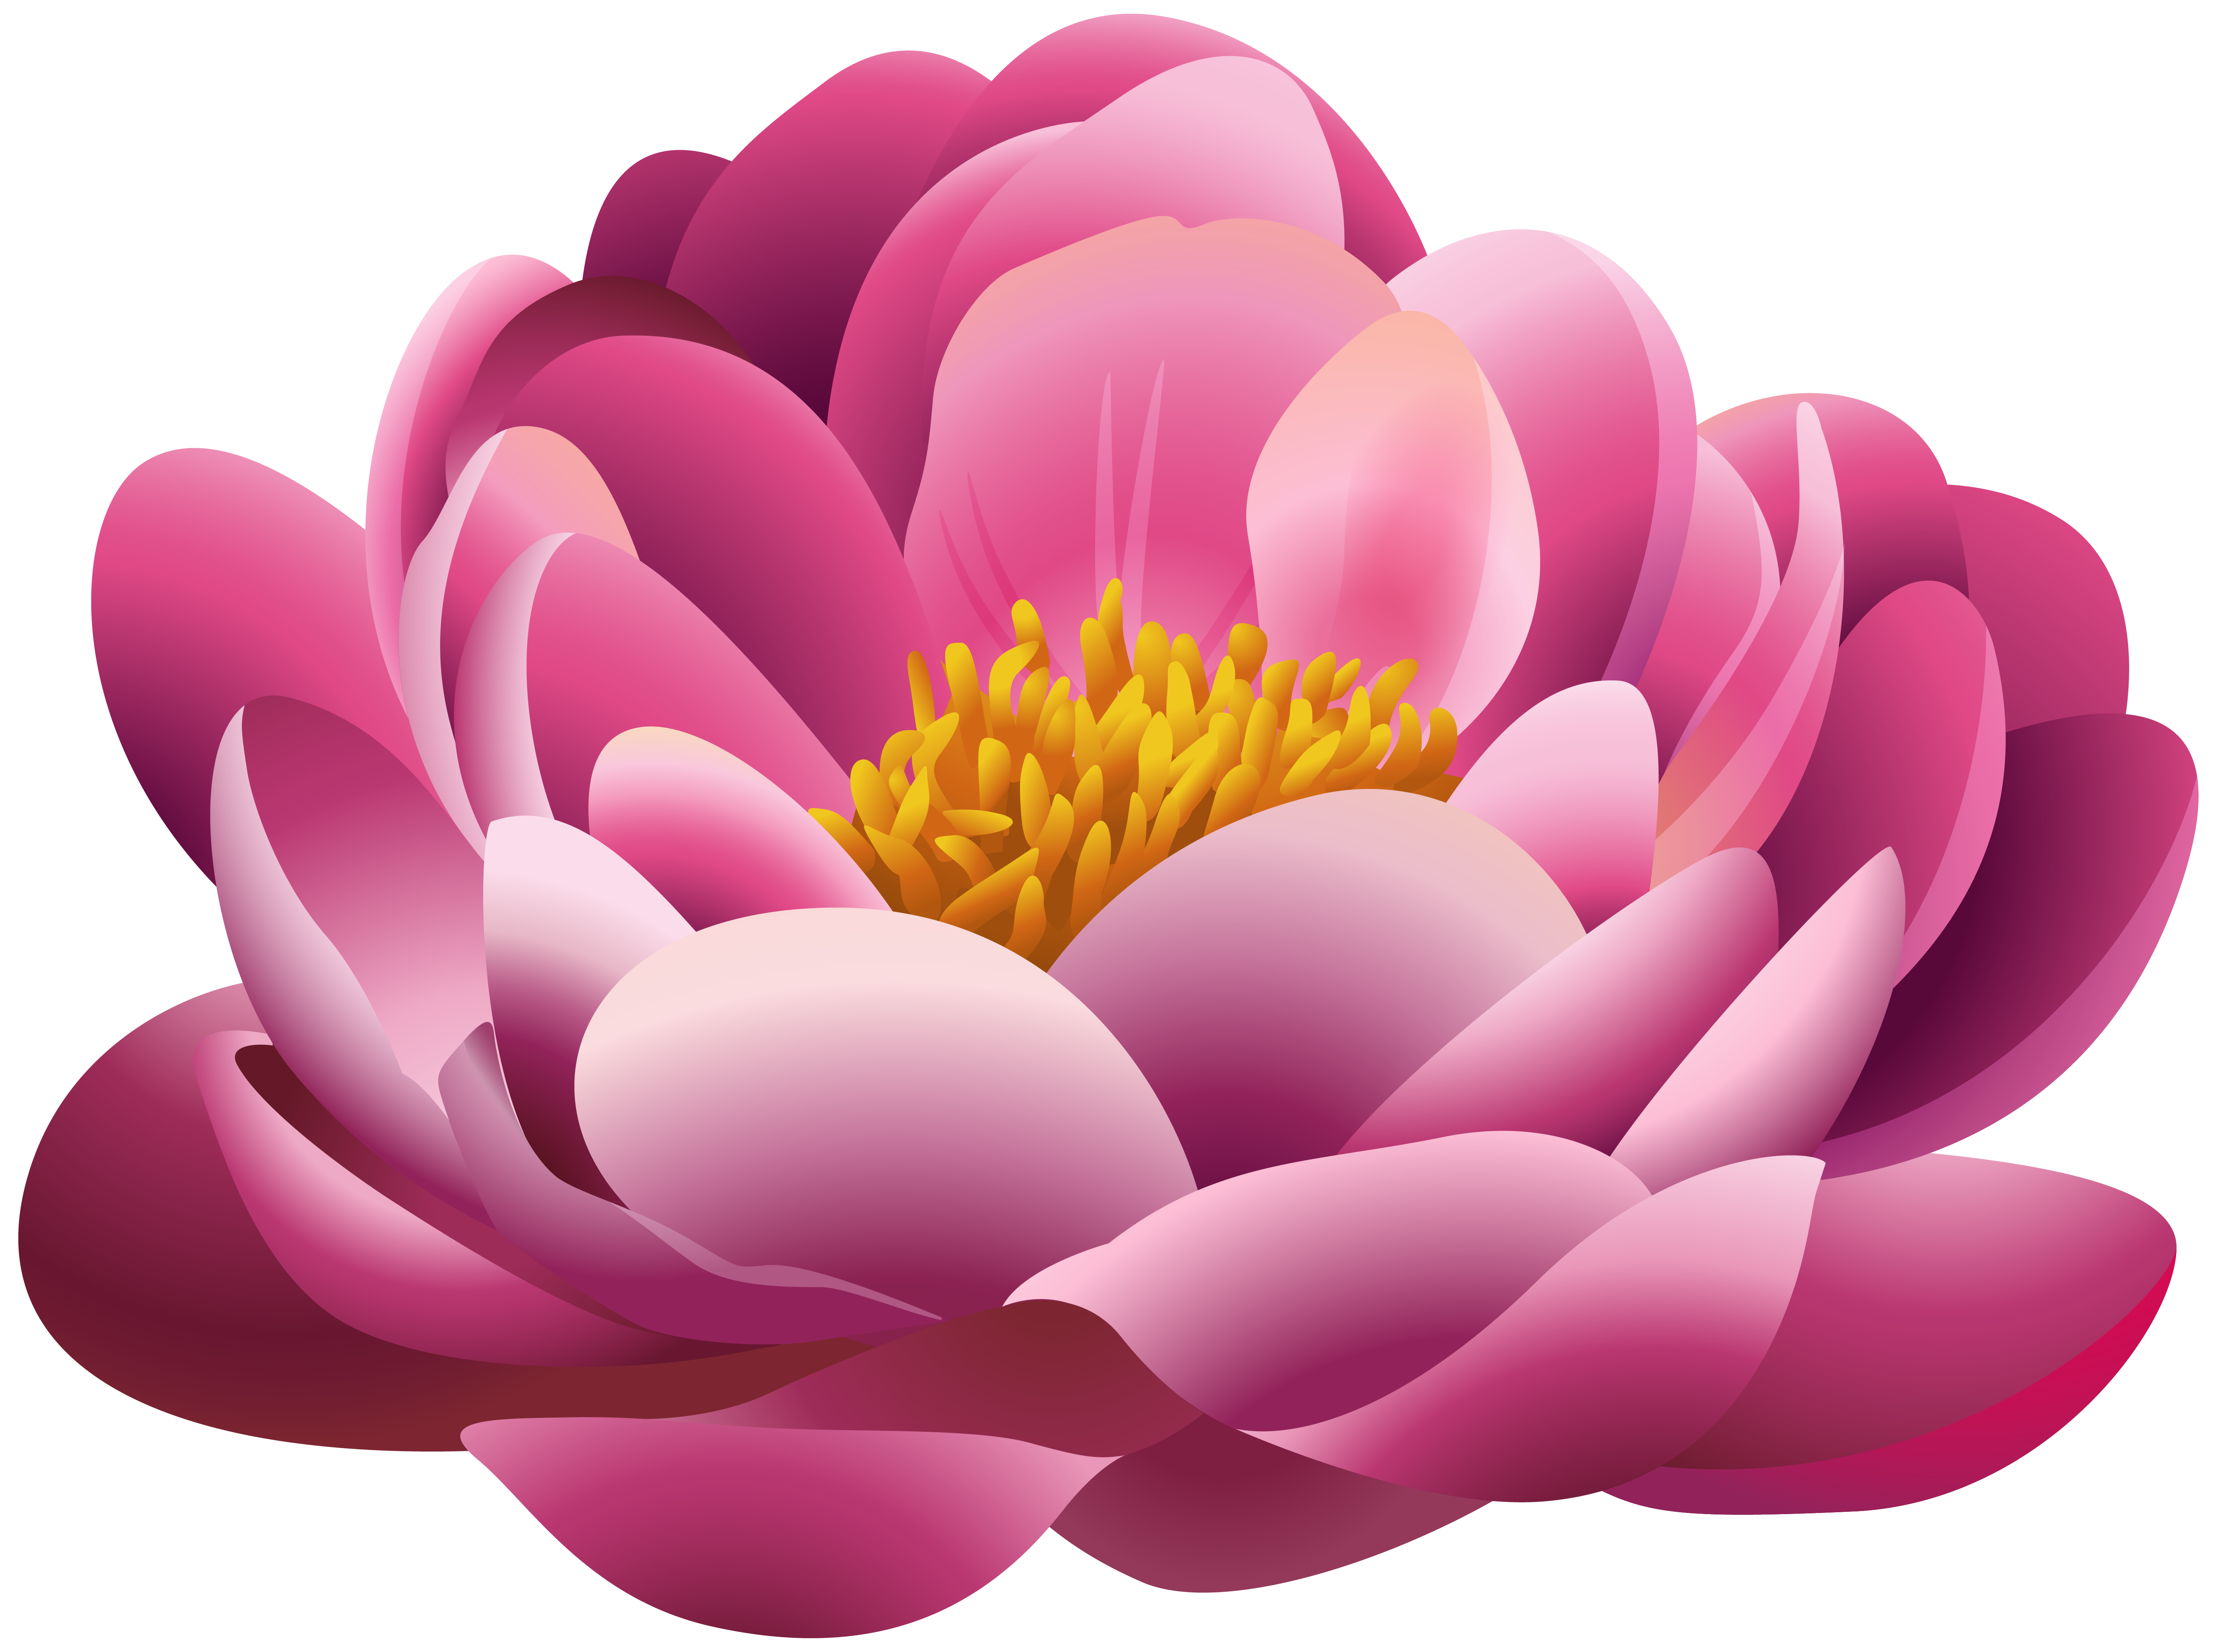 Pretty flowers clipart clipart images gallery for free.